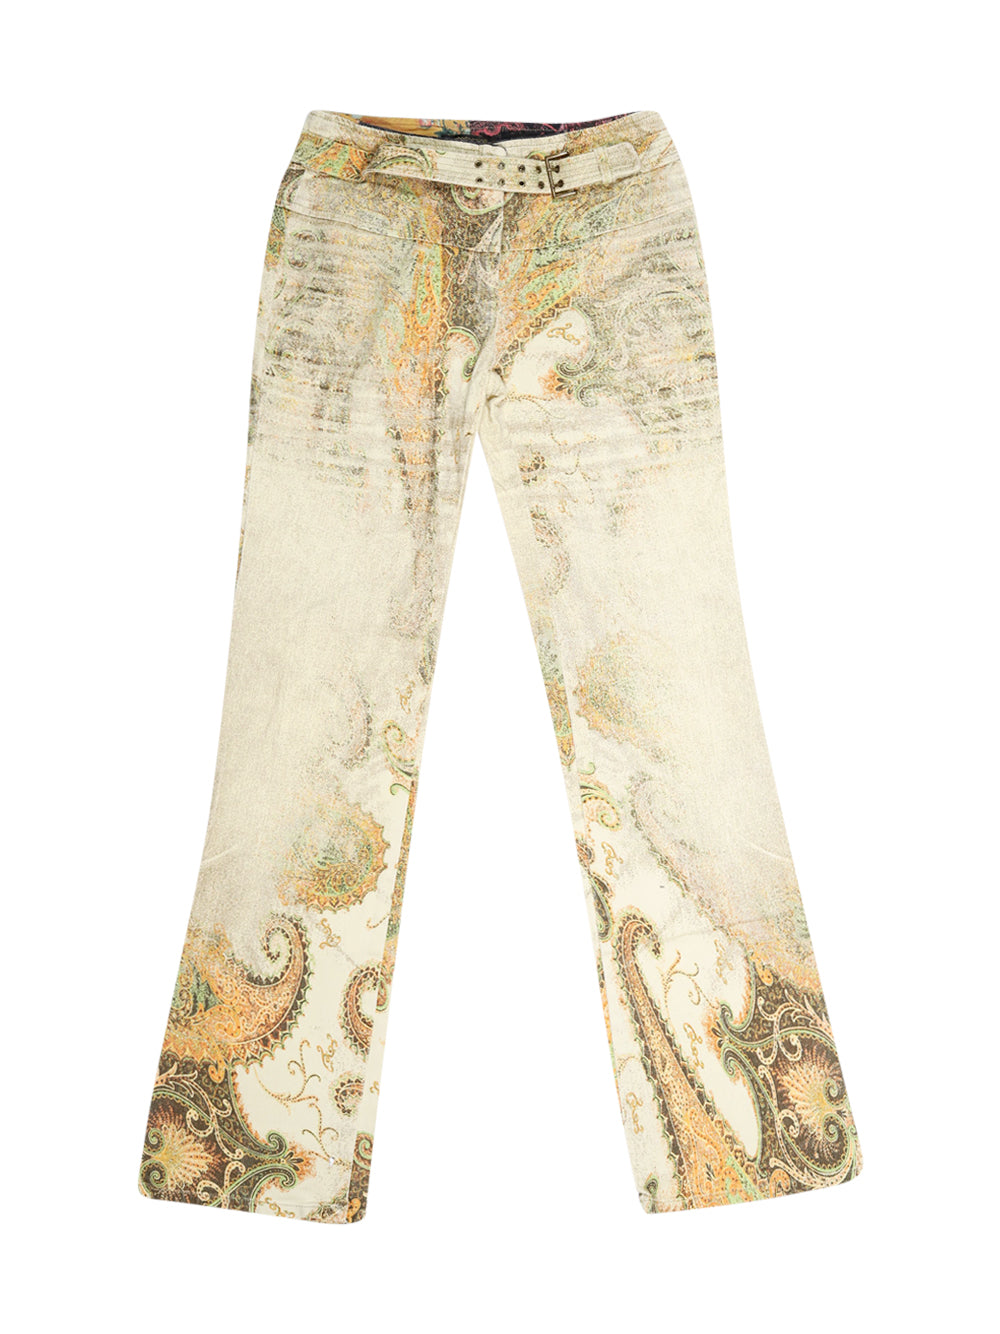 Front photo of Preloved Roberto Cavalli Beige Woman's trousers - size 6/XS